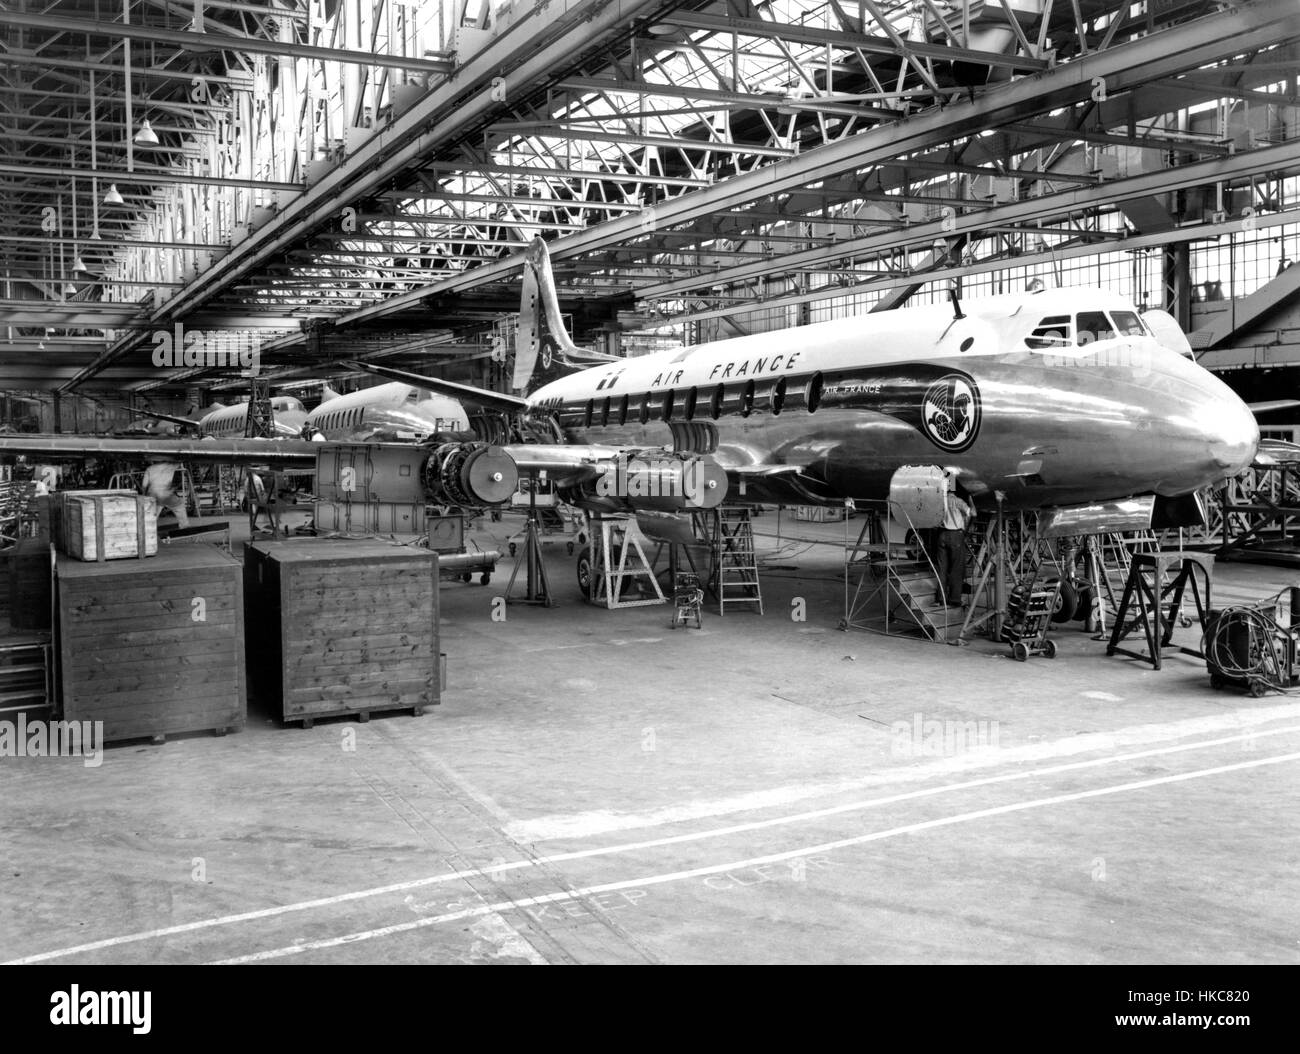 Vickers Armstrong Viking under construction, 1940s 1950s. Vickers-Armstrong Viscount under construction in an Aircraft - Stock Image